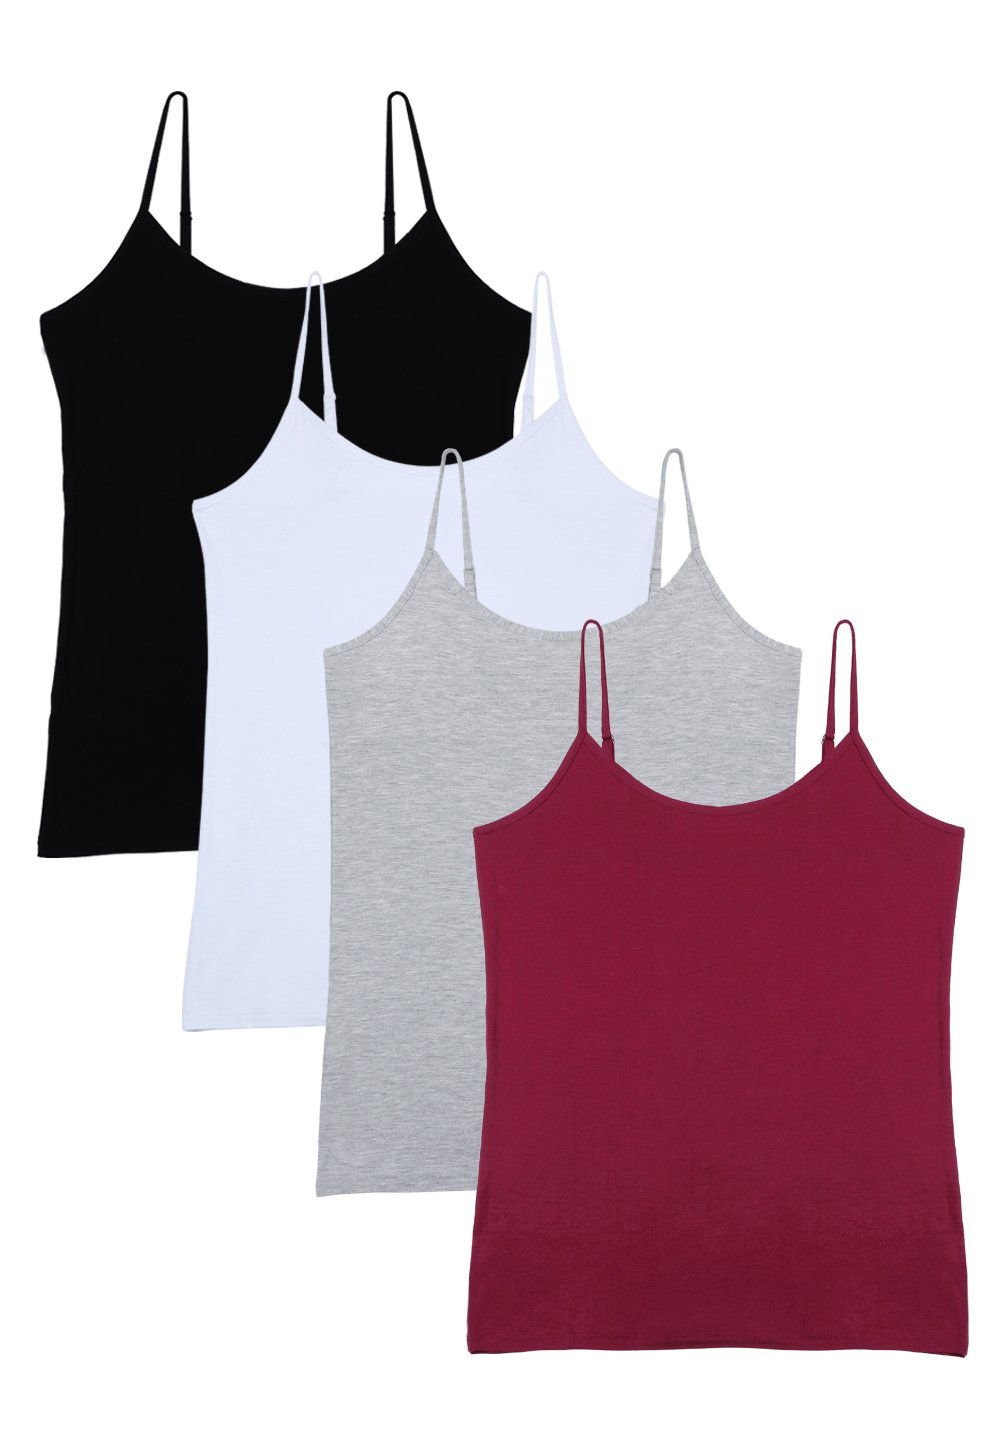 a40324cab2db Vislivin Women's Basic Solid Camisole Adjustable Spaghetti Strap Tank Top  product image